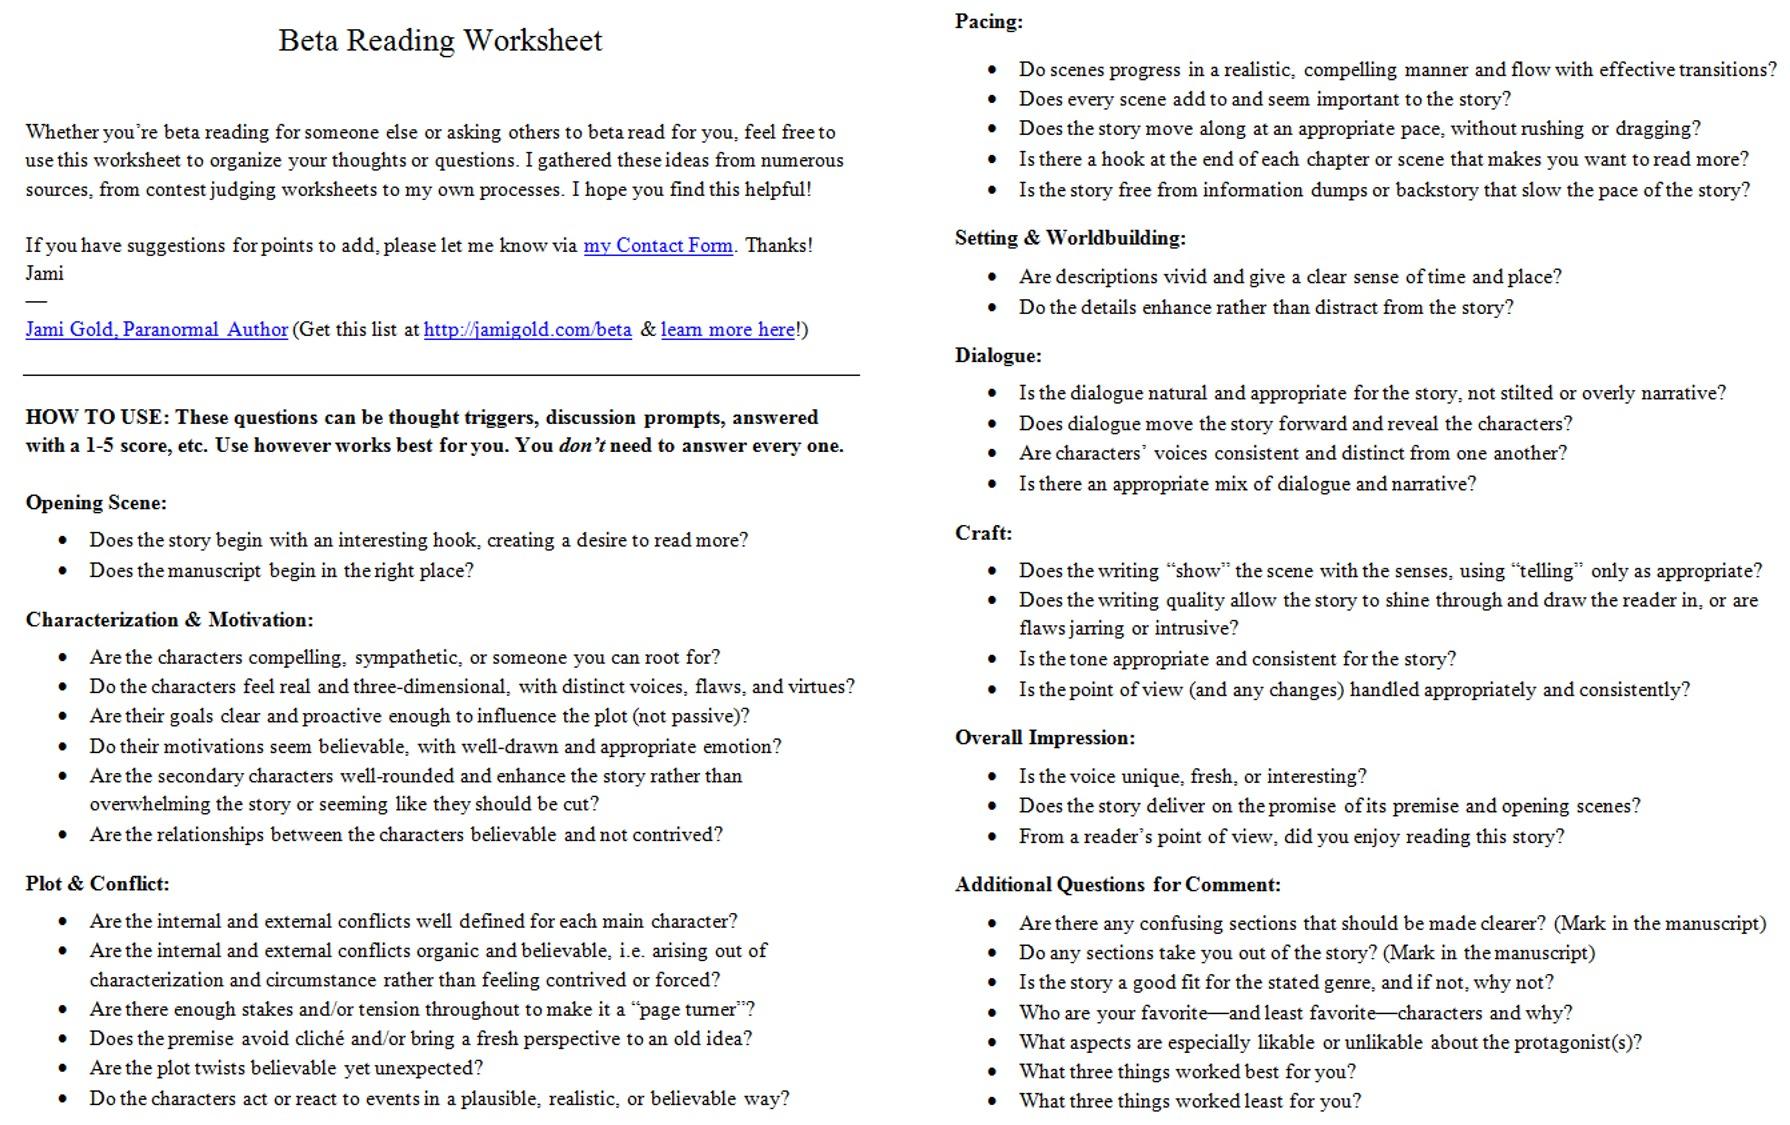 Aldiablosus  Splendid Worksheets For Writers  Jami Gold Paranormal Author With Entrancing Screen Shot Of The Twopage Beta Reading Worksheet With Enchanting Basic French Worksheets Also Study Worksheets In Addition Adding Numbers Worksheets And Shapes Worksheets For First Grade As Well As Adding Multi Digit Numbers Worksheets Additionally Alphabetizing Worksheet From Jamigoldcom With Aldiablosus  Entrancing Worksheets For Writers  Jami Gold Paranormal Author With Enchanting Screen Shot Of The Twopage Beta Reading Worksheet And Splendid Basic French Worksheets Also Study Worksheets In Addition Adding Numbers Worksheets From Jamigoldcom